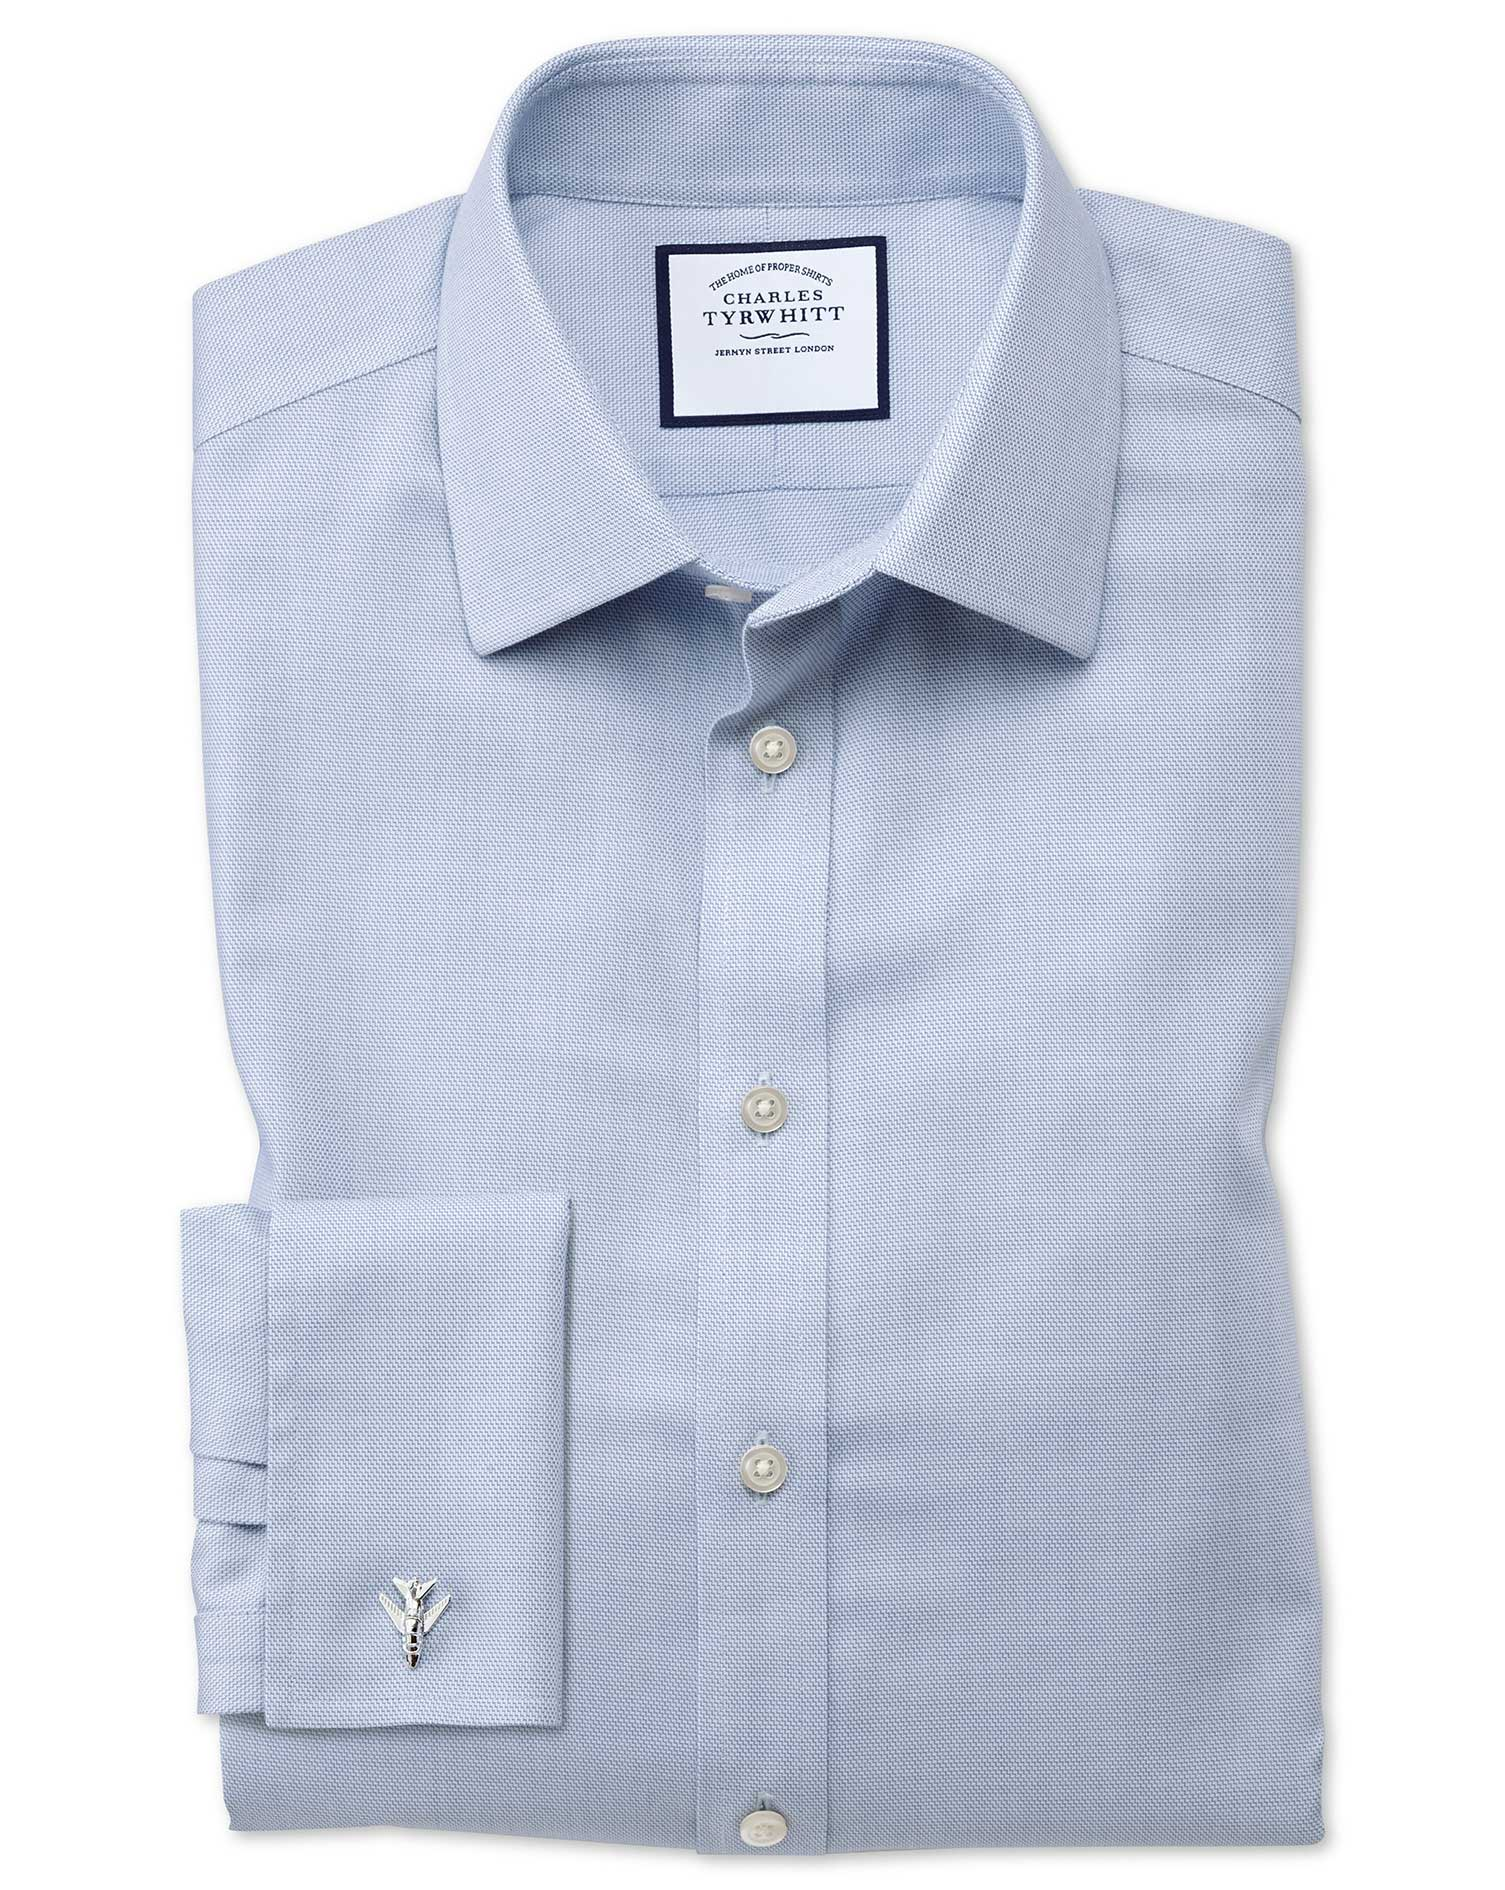 Extra Slim Fit Non-Iron Step Weave Mid Blue Cotton Formal Shirt Double Cuff Size 14.5/32 by Charles